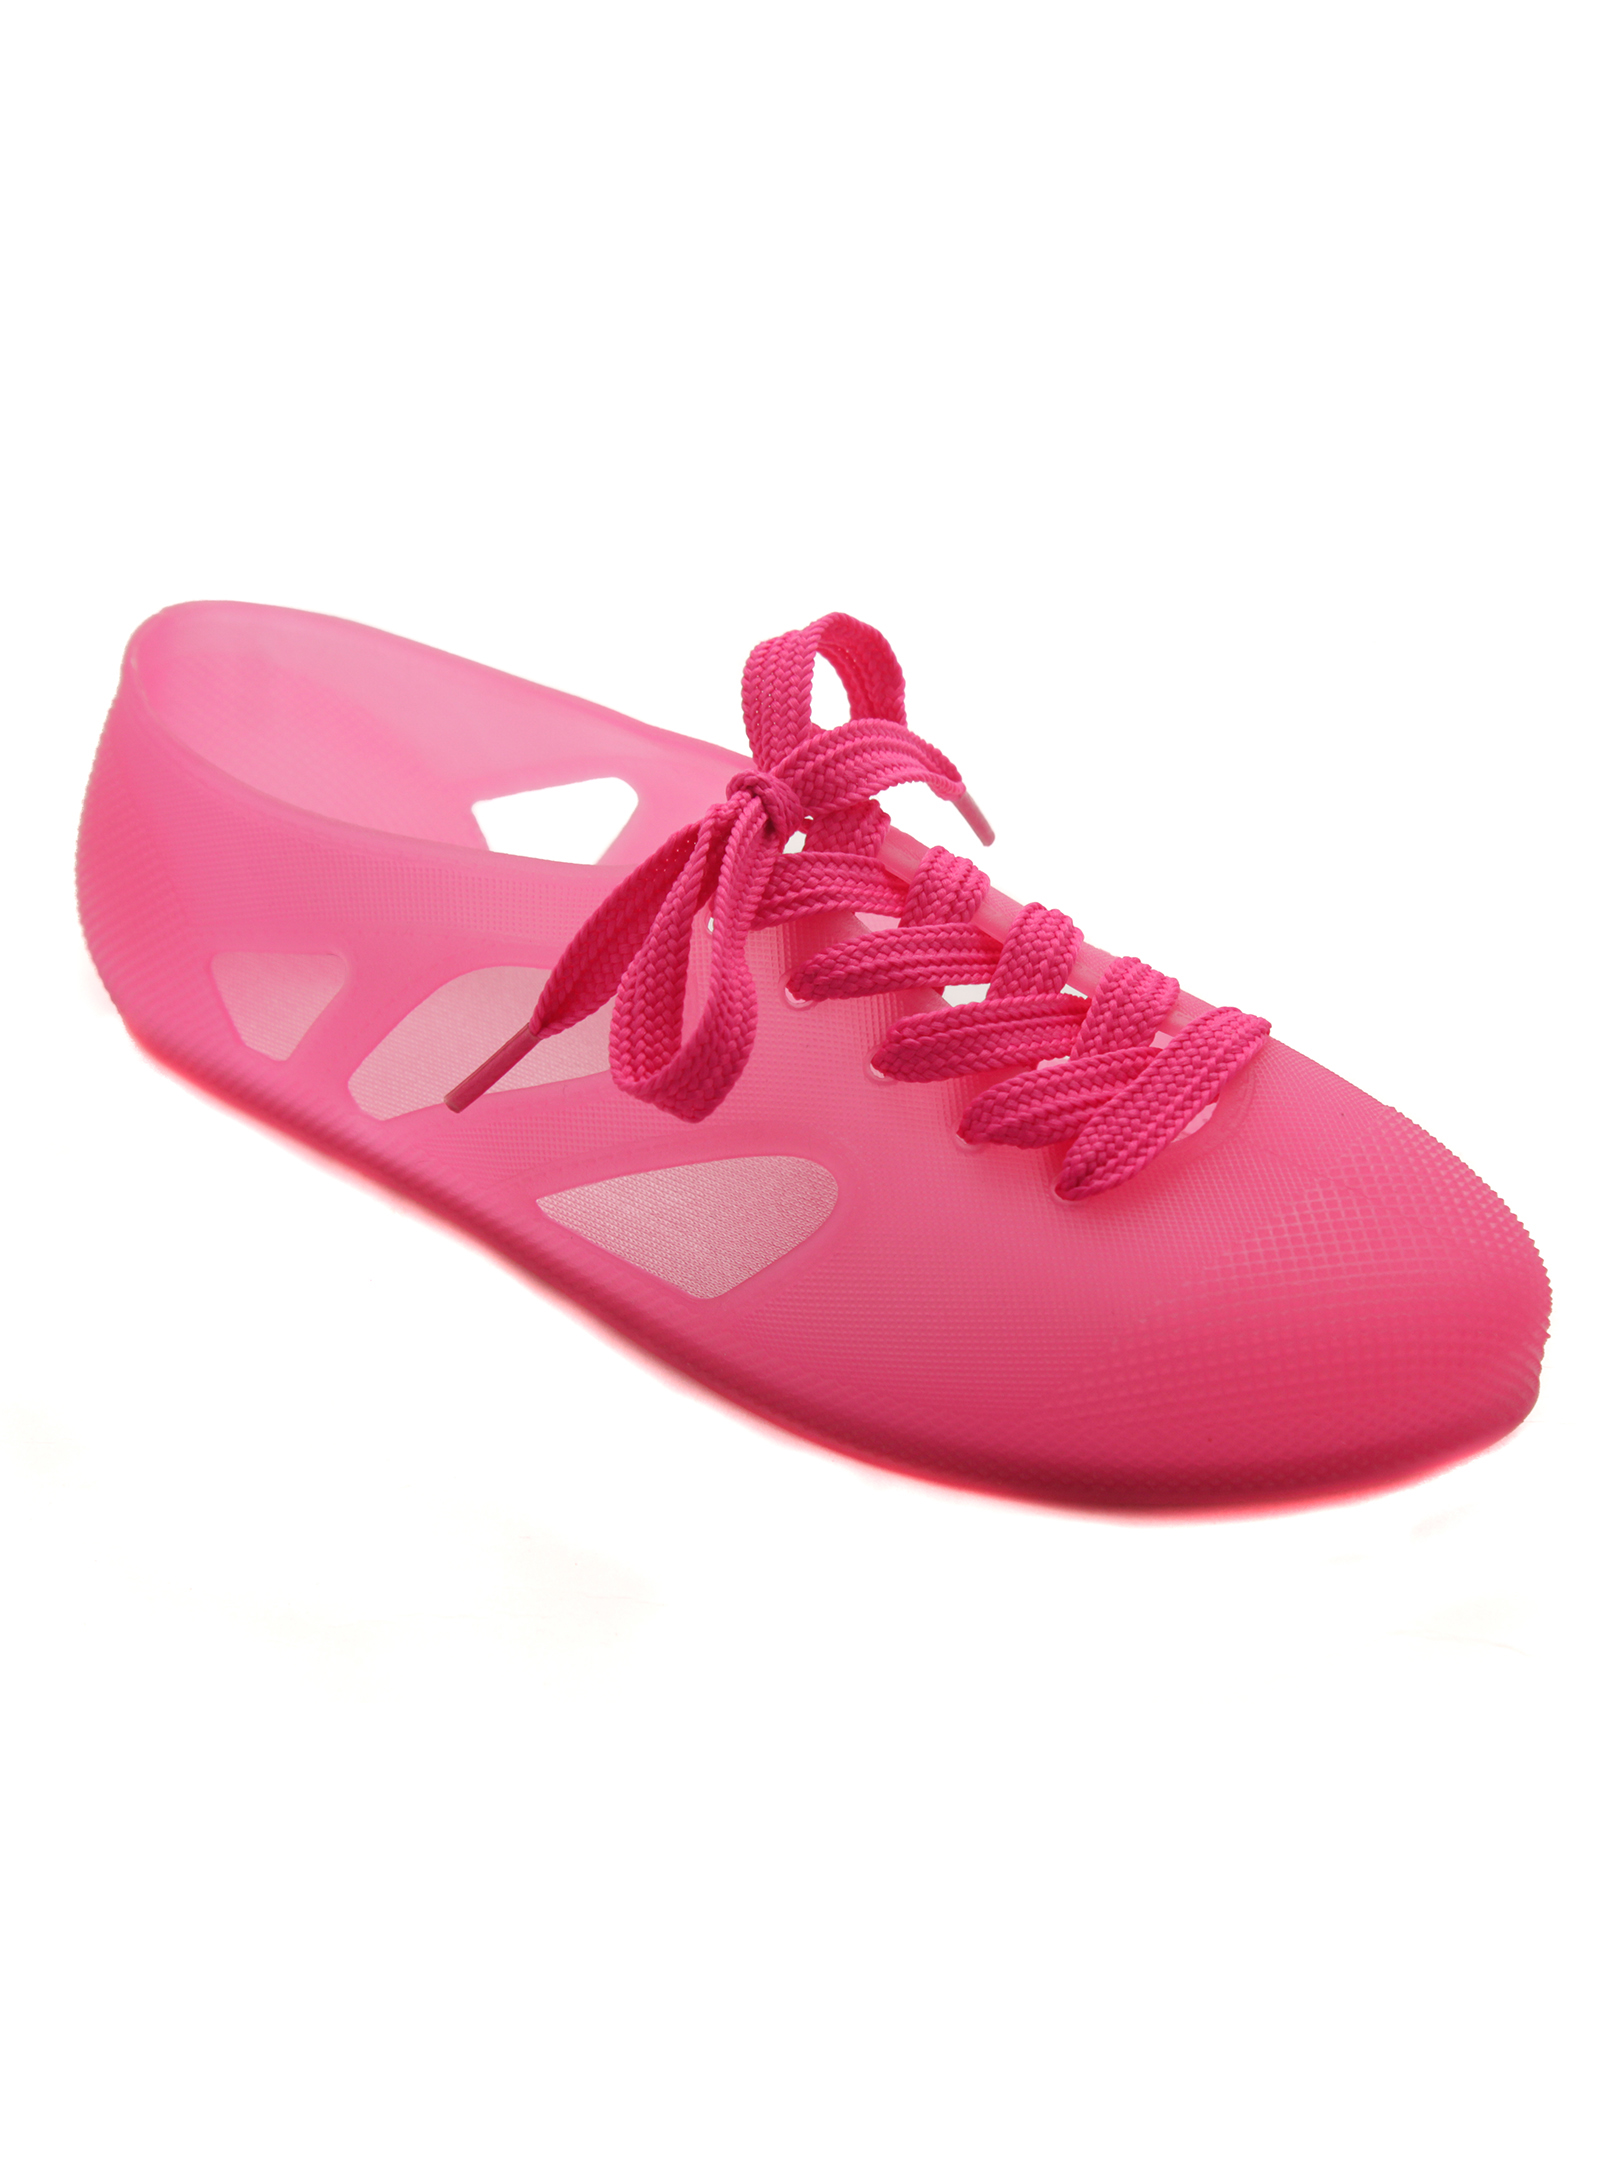 Trends & Trades   Trends & Trades Anti Slip Pink Shoes for Women